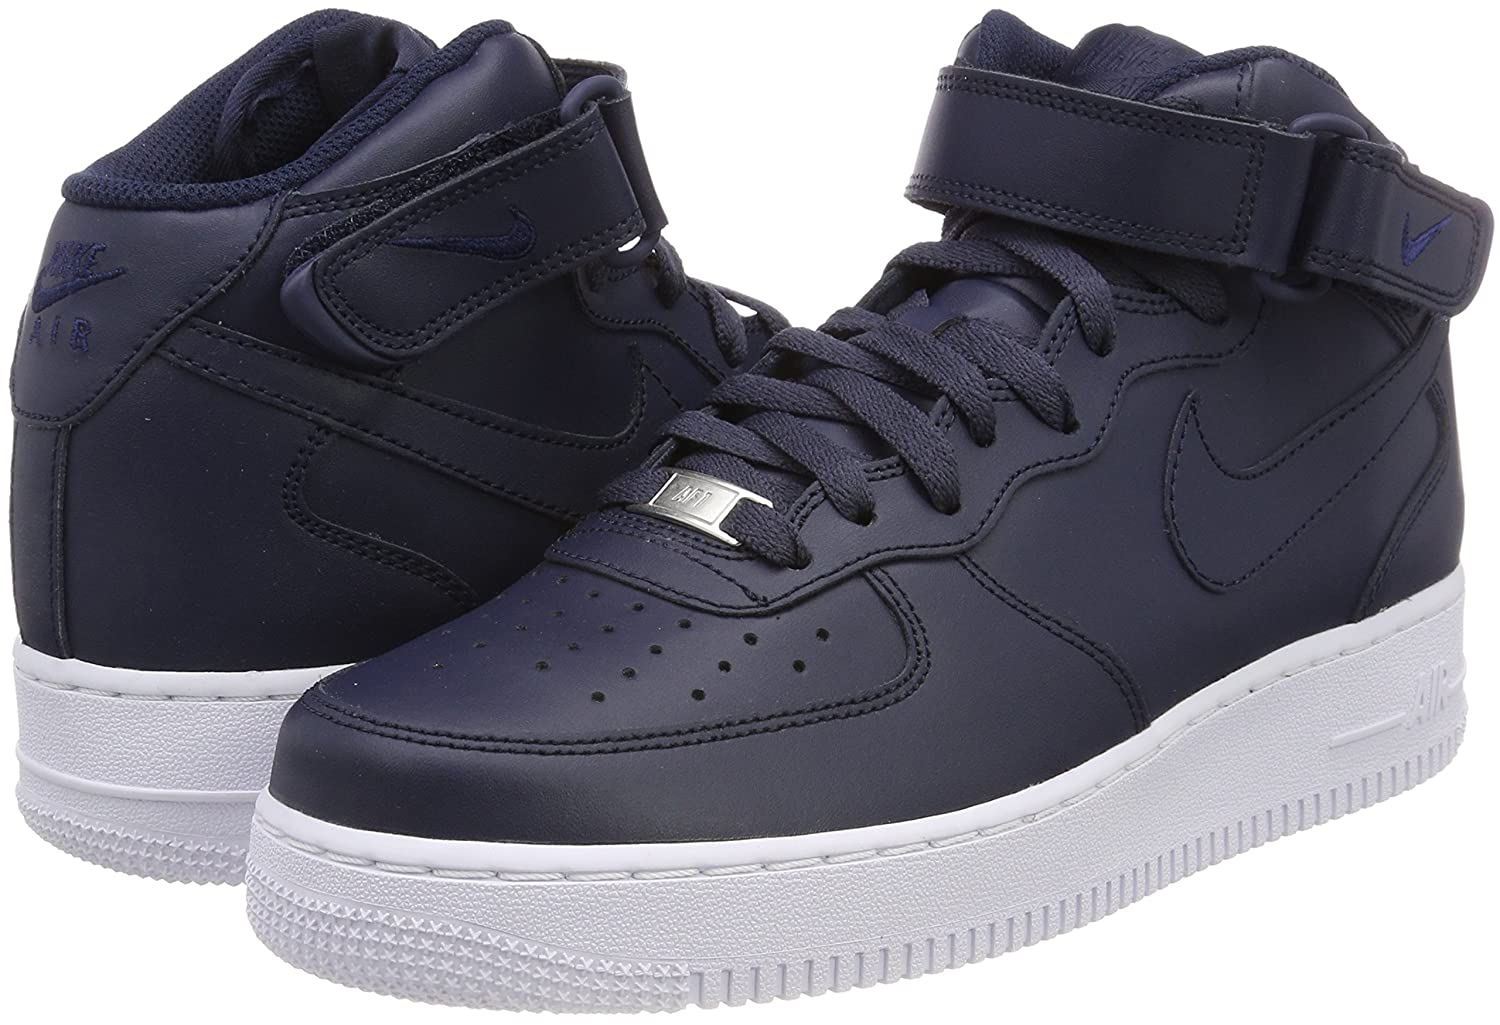 Nike Air Force 1 Mid '07 Men's B07921249H 12 D(M) US|Obsidian / Obsidian-white